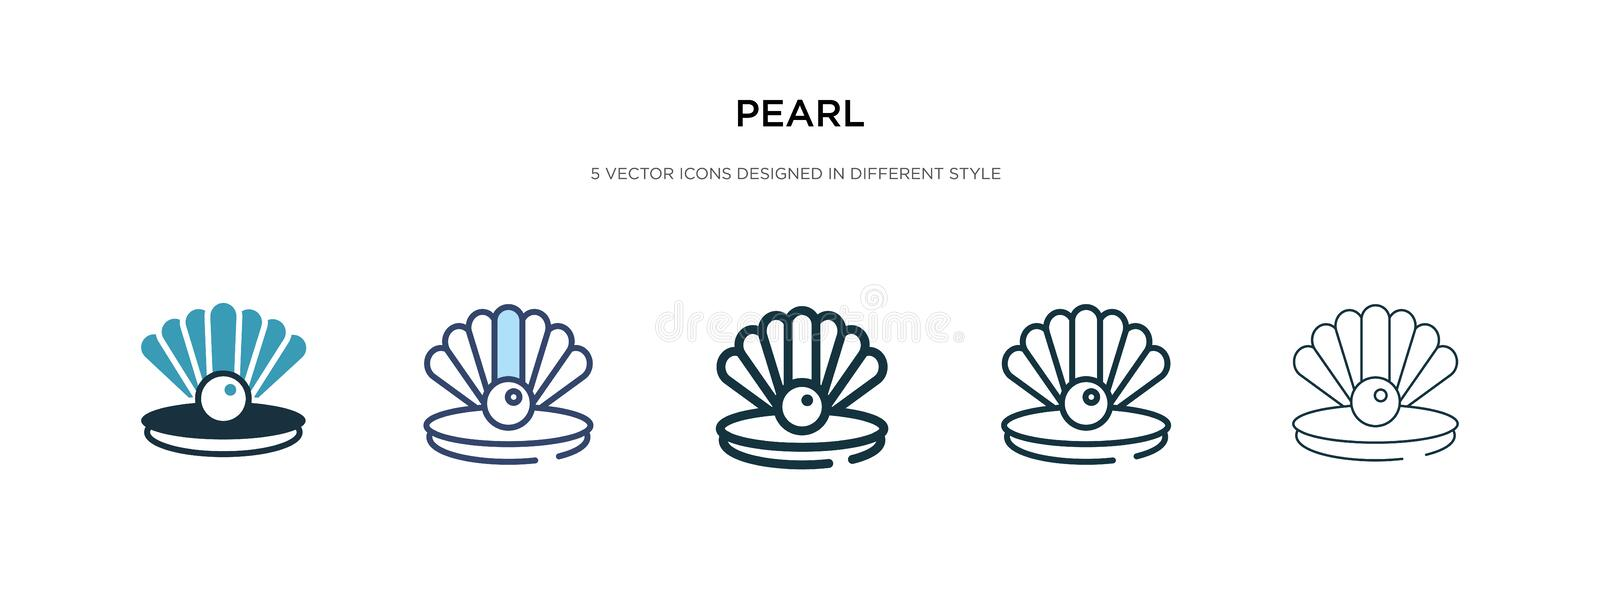 Pearl icon in different style vector illustration. two colored and black pearl vector icons designed in filled, outline, line and vector illustration